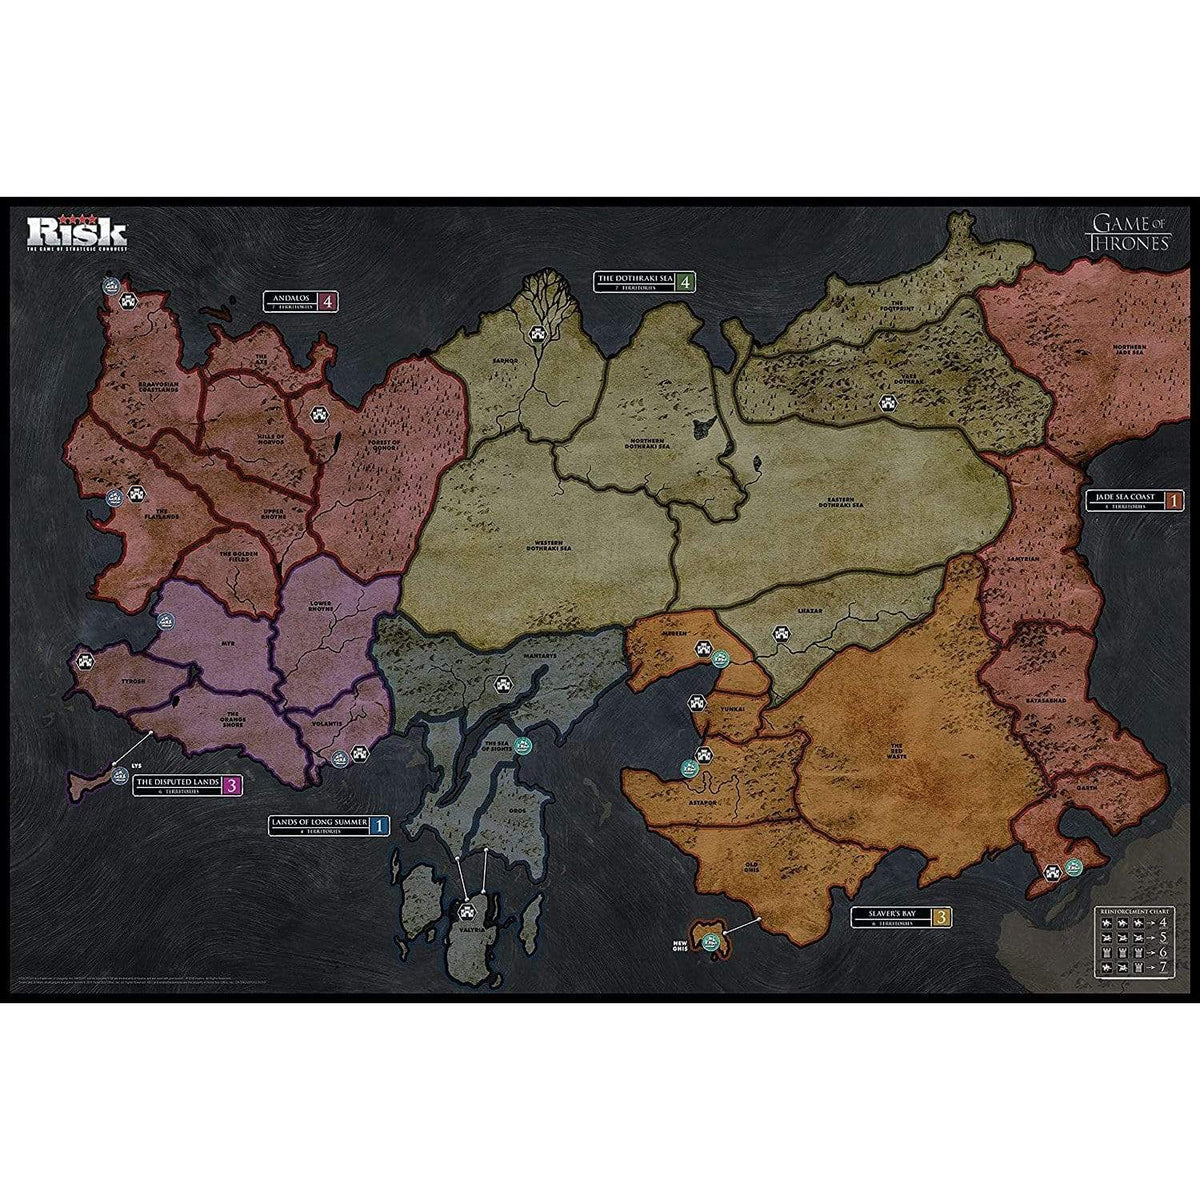 Risk: Game Of Thrones Alliance Games Board Games